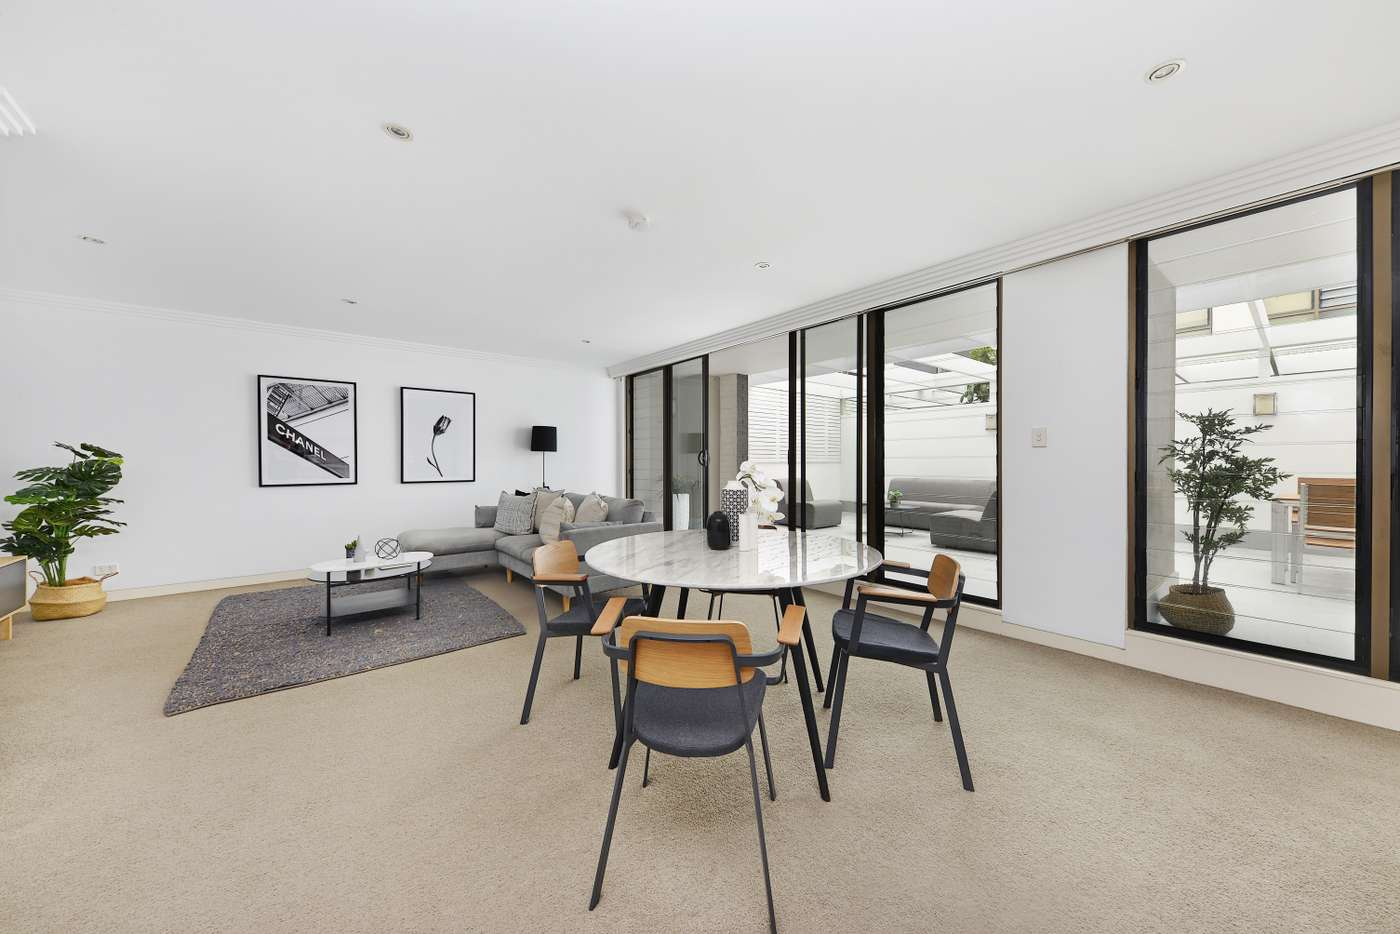 Fifth view of Homely unit listing, 311/200 Maroubra Road, Maroubra NSW 2035